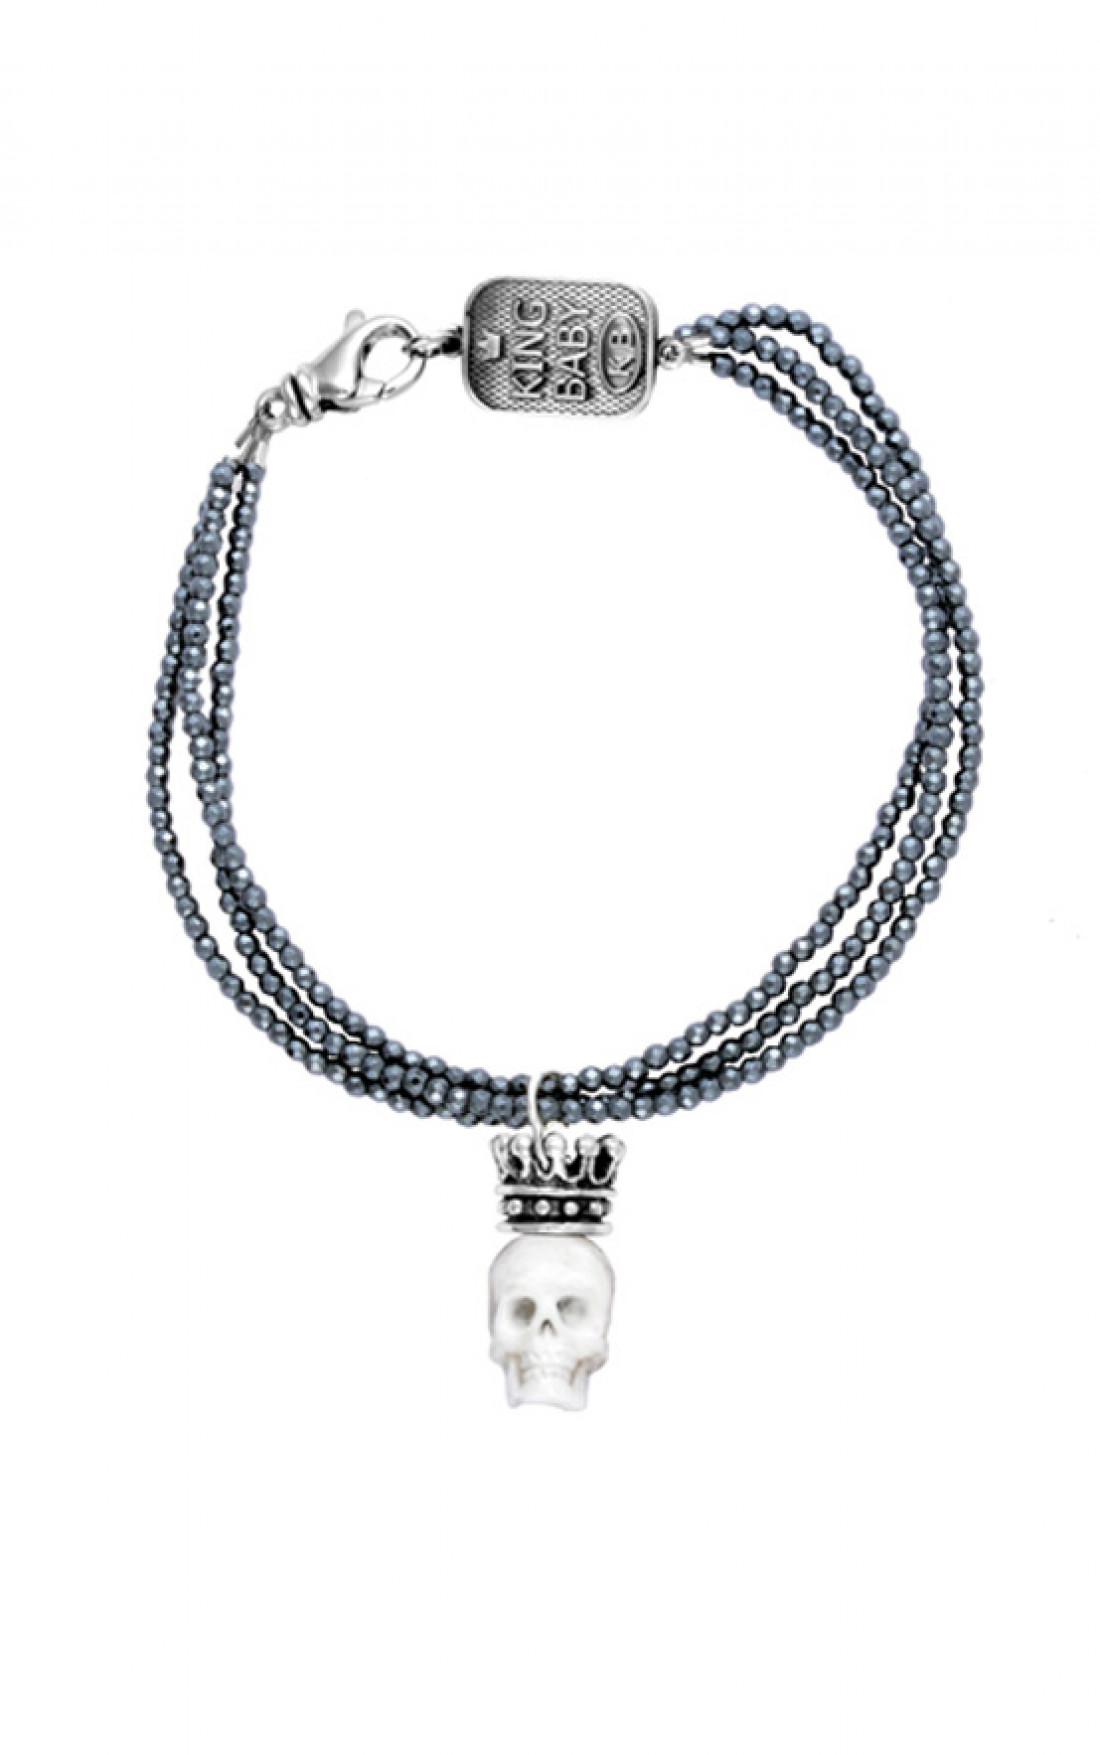 Queen Baby - Three Strand Hematite Bracelet with Crowned Bone Skull (Q42-5163)